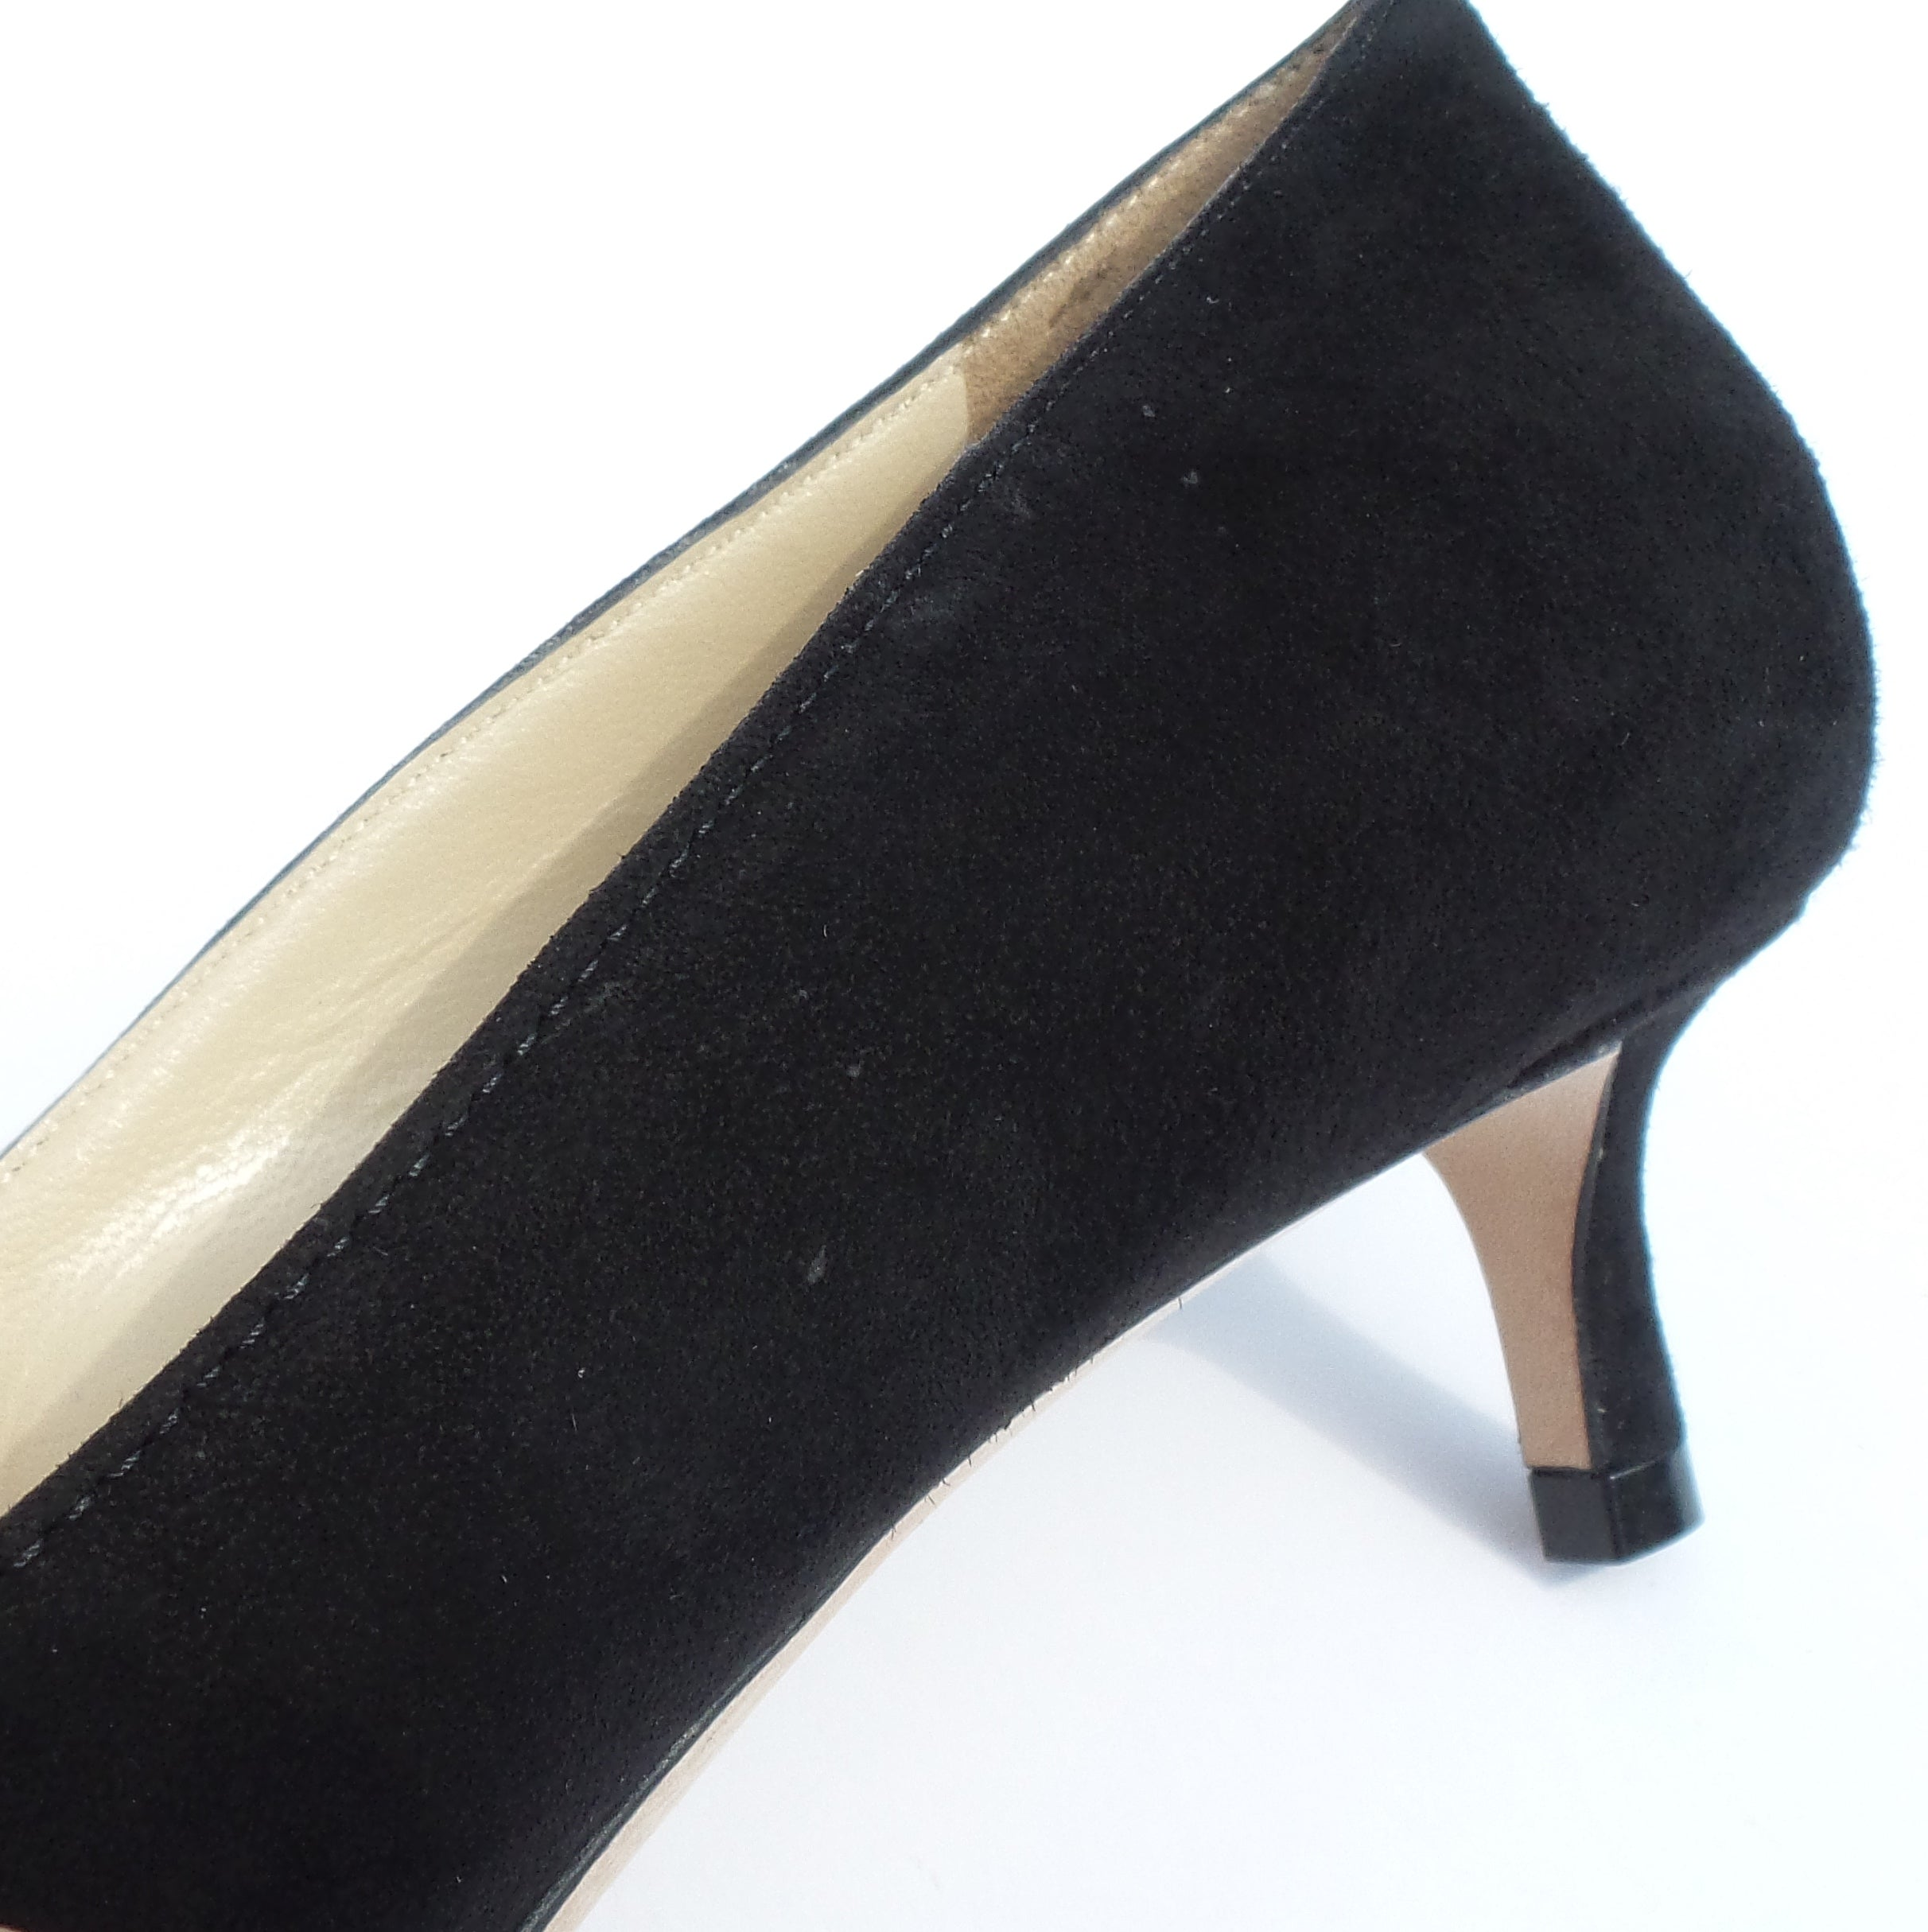 "'Sold' $595 JIMMY CHOO Romy 40 Black Suede Pointed Toe Low 1.5"" Kitten Heel Pumps 36.5"